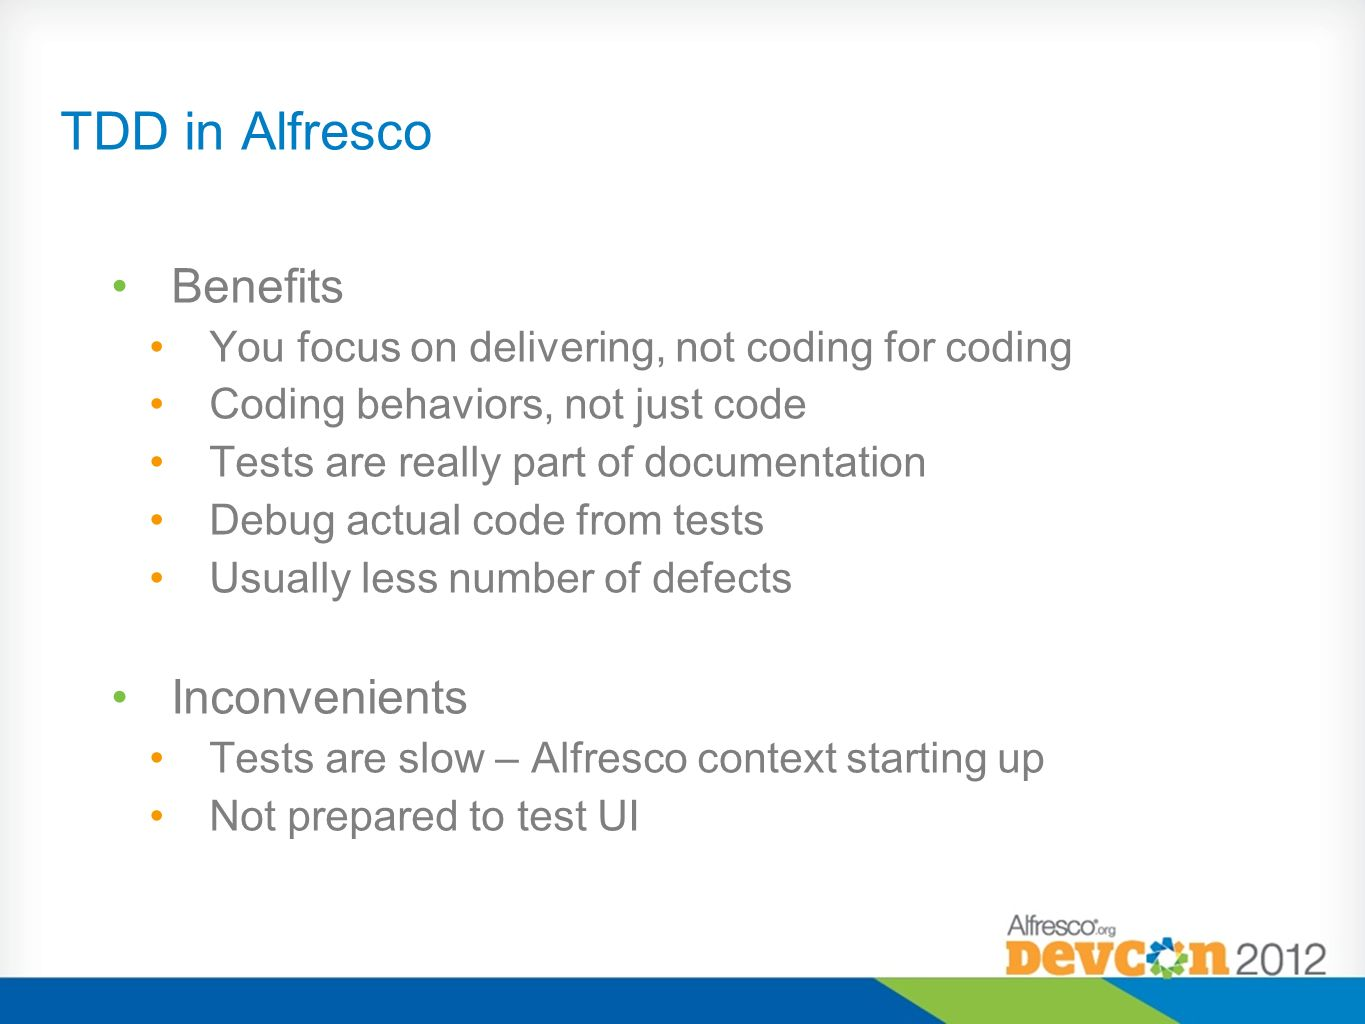 TDD in Alfresco Benefits Inconvenients